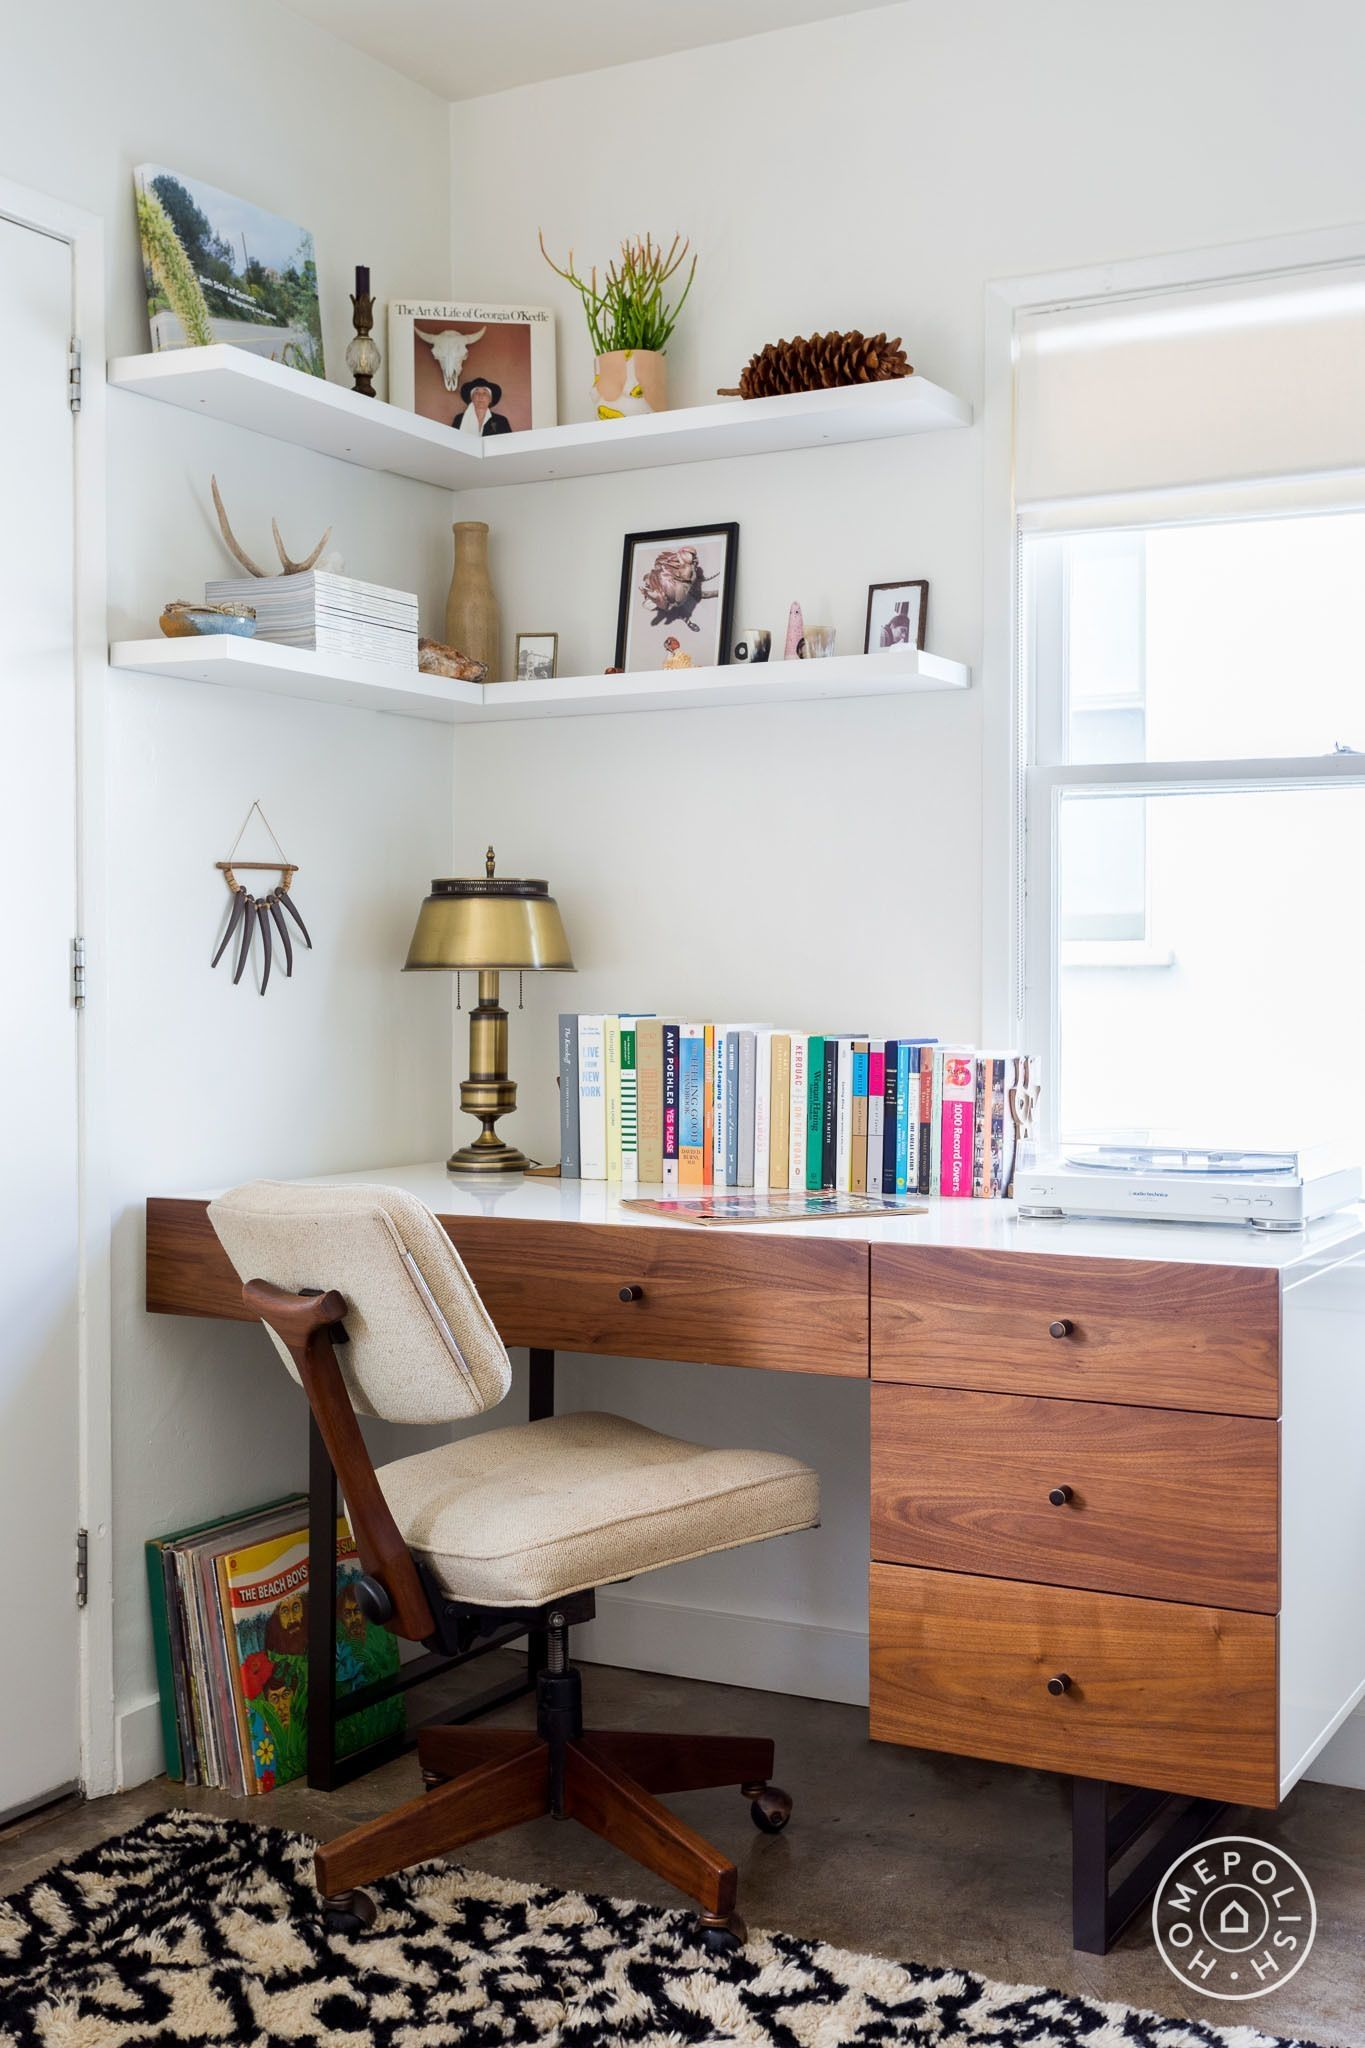 48 small space ideas for home office modern home office on smart corner home office ideas id=91473